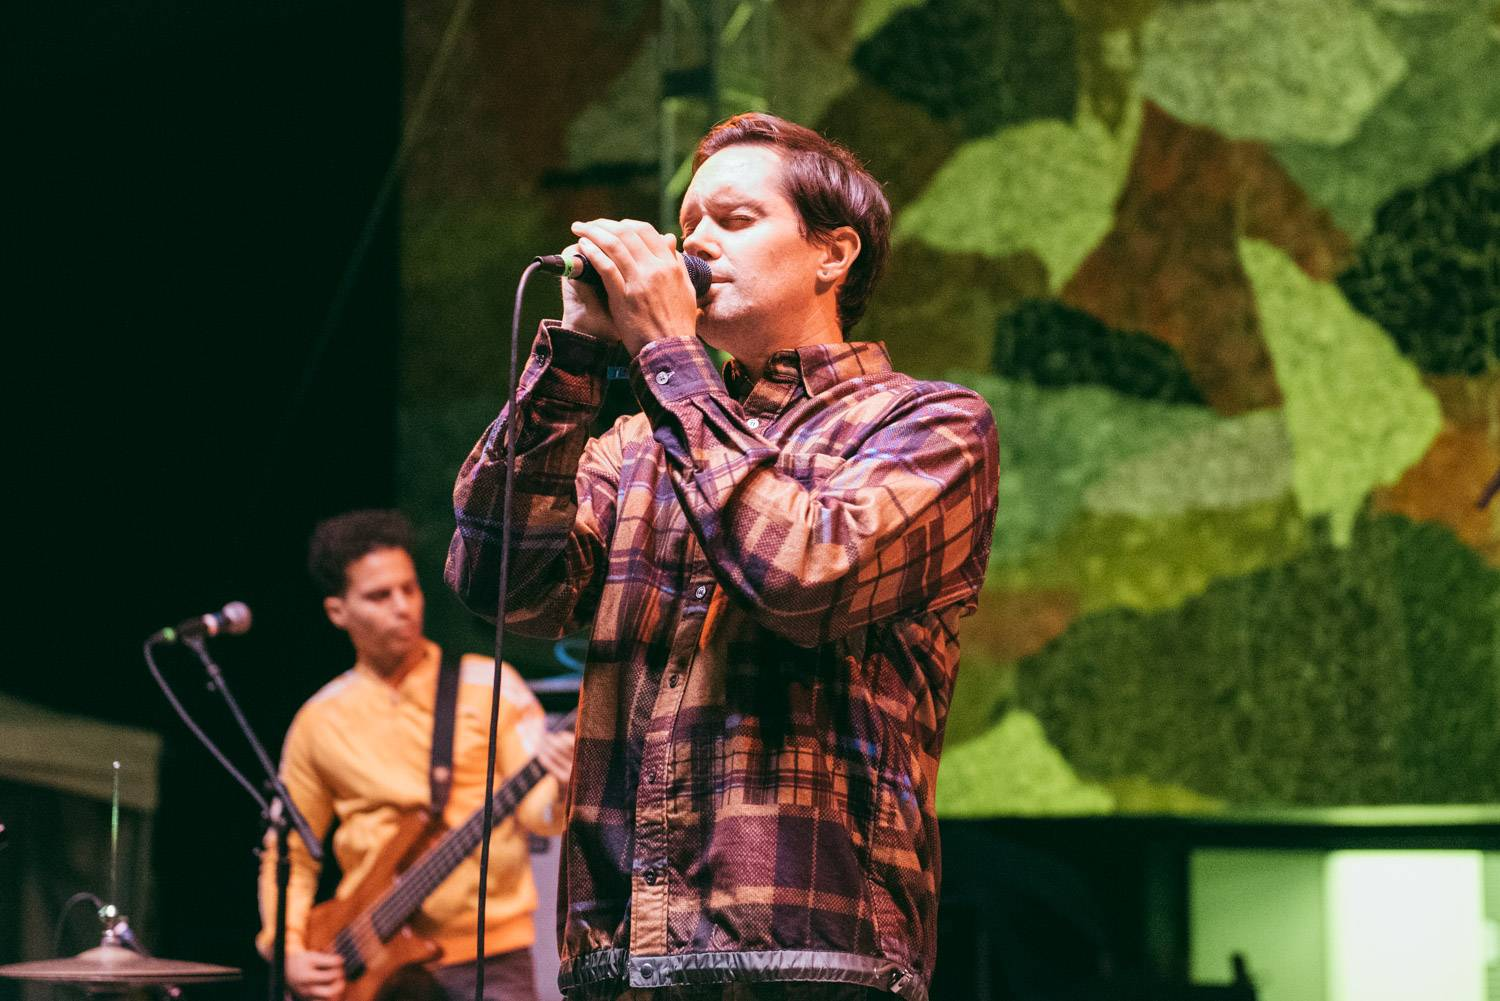 Rhye at the Bumbershoot Music Festival 2018 - Day1. Aug 31 2018. Pavel Boiko photo.